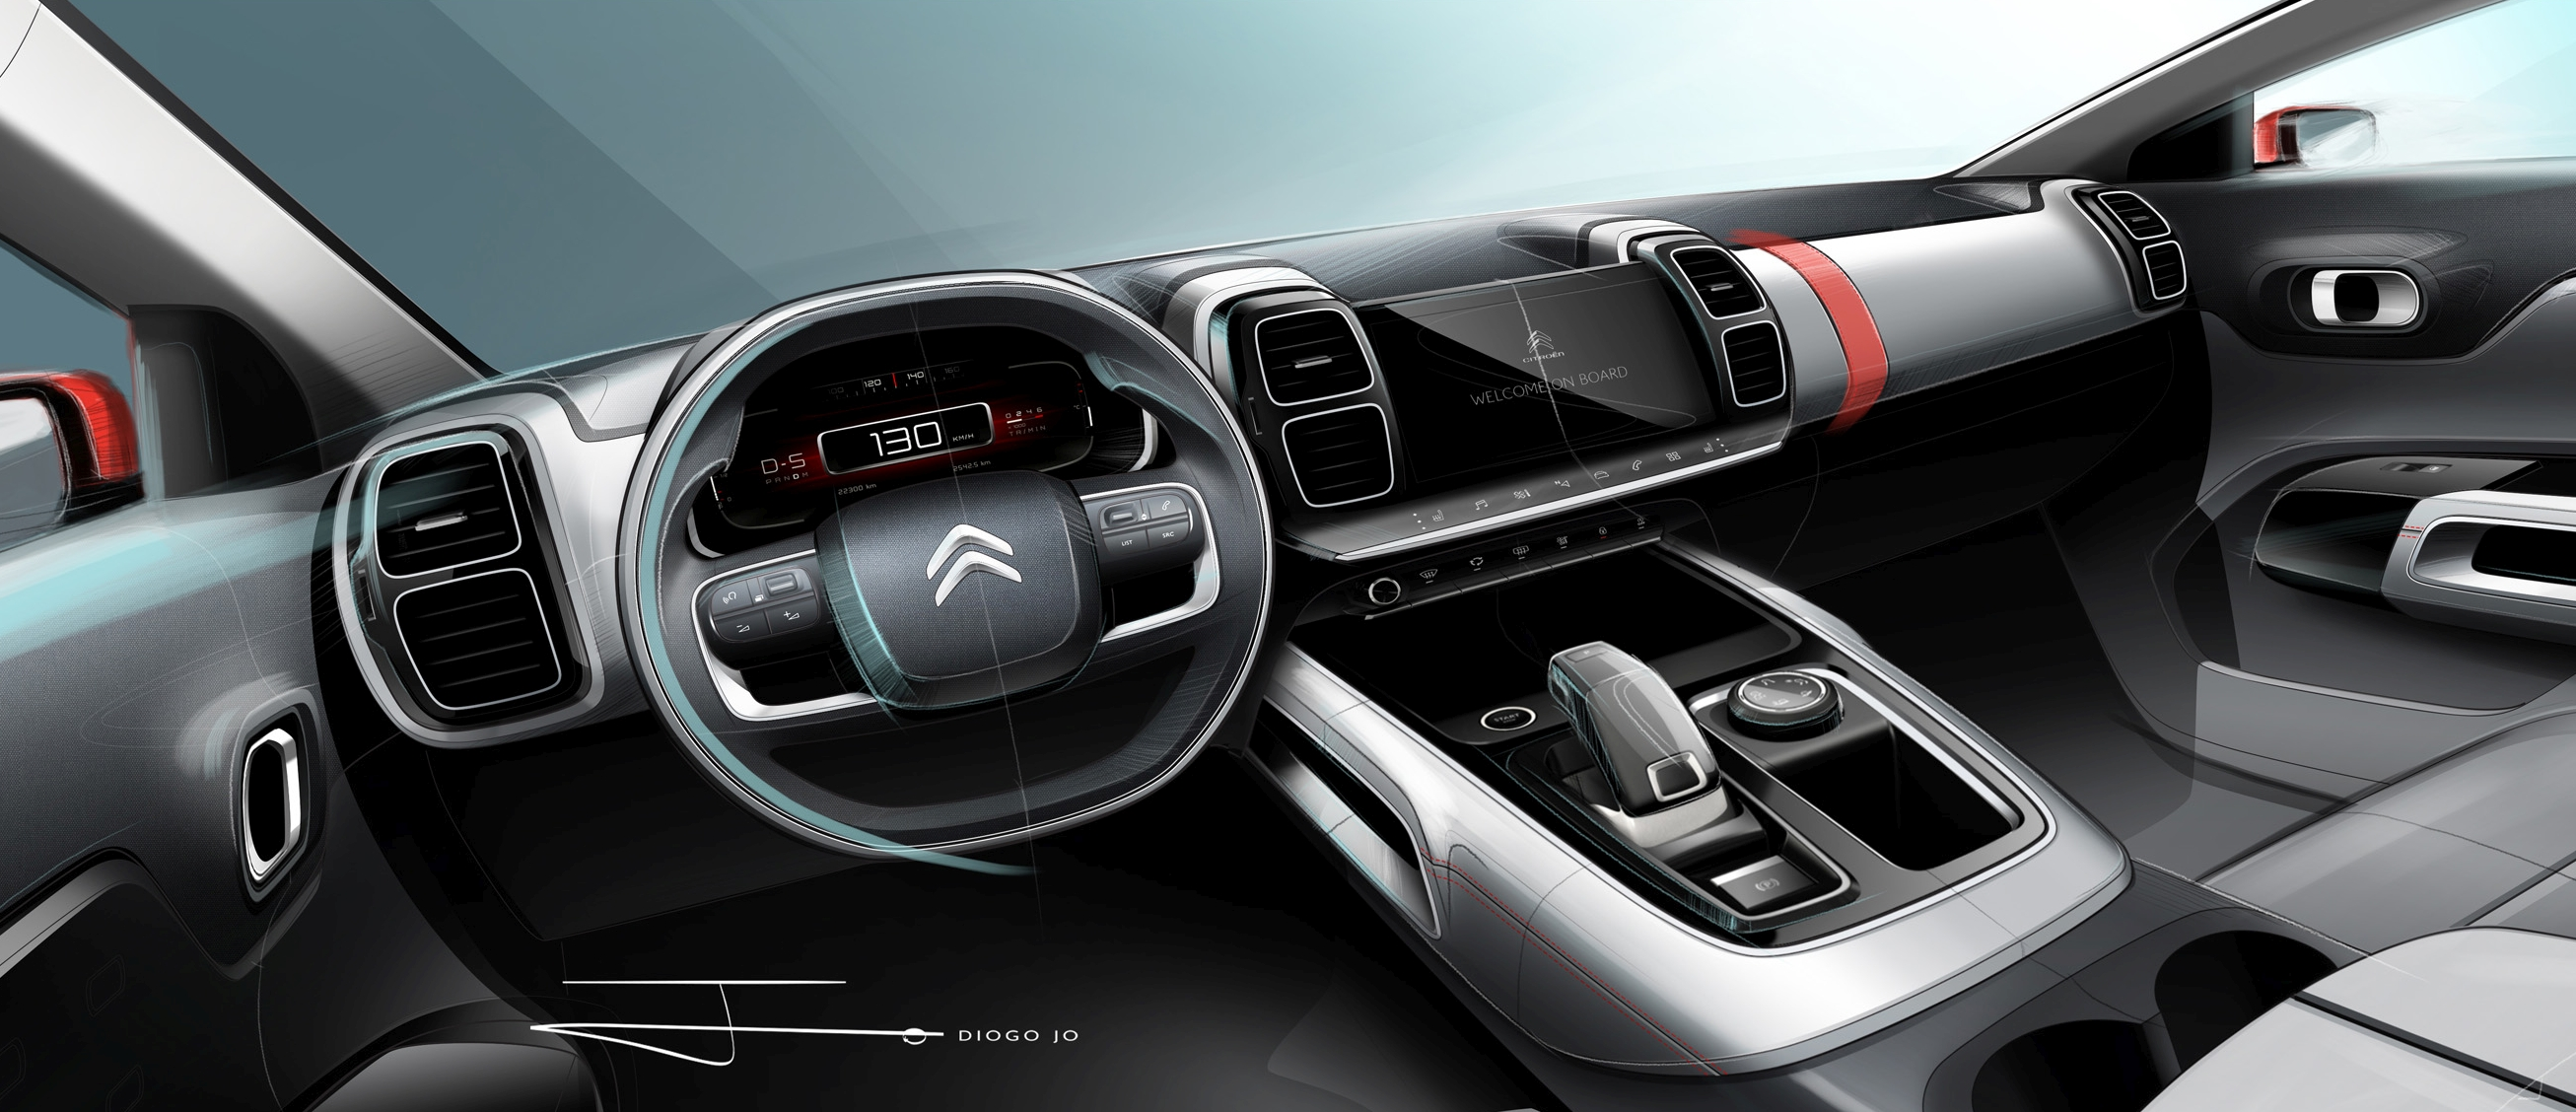 citroen c5 aircross interior teased ahead of shanghai. Black Bedroom Furniture Sets. Home Design Ideas